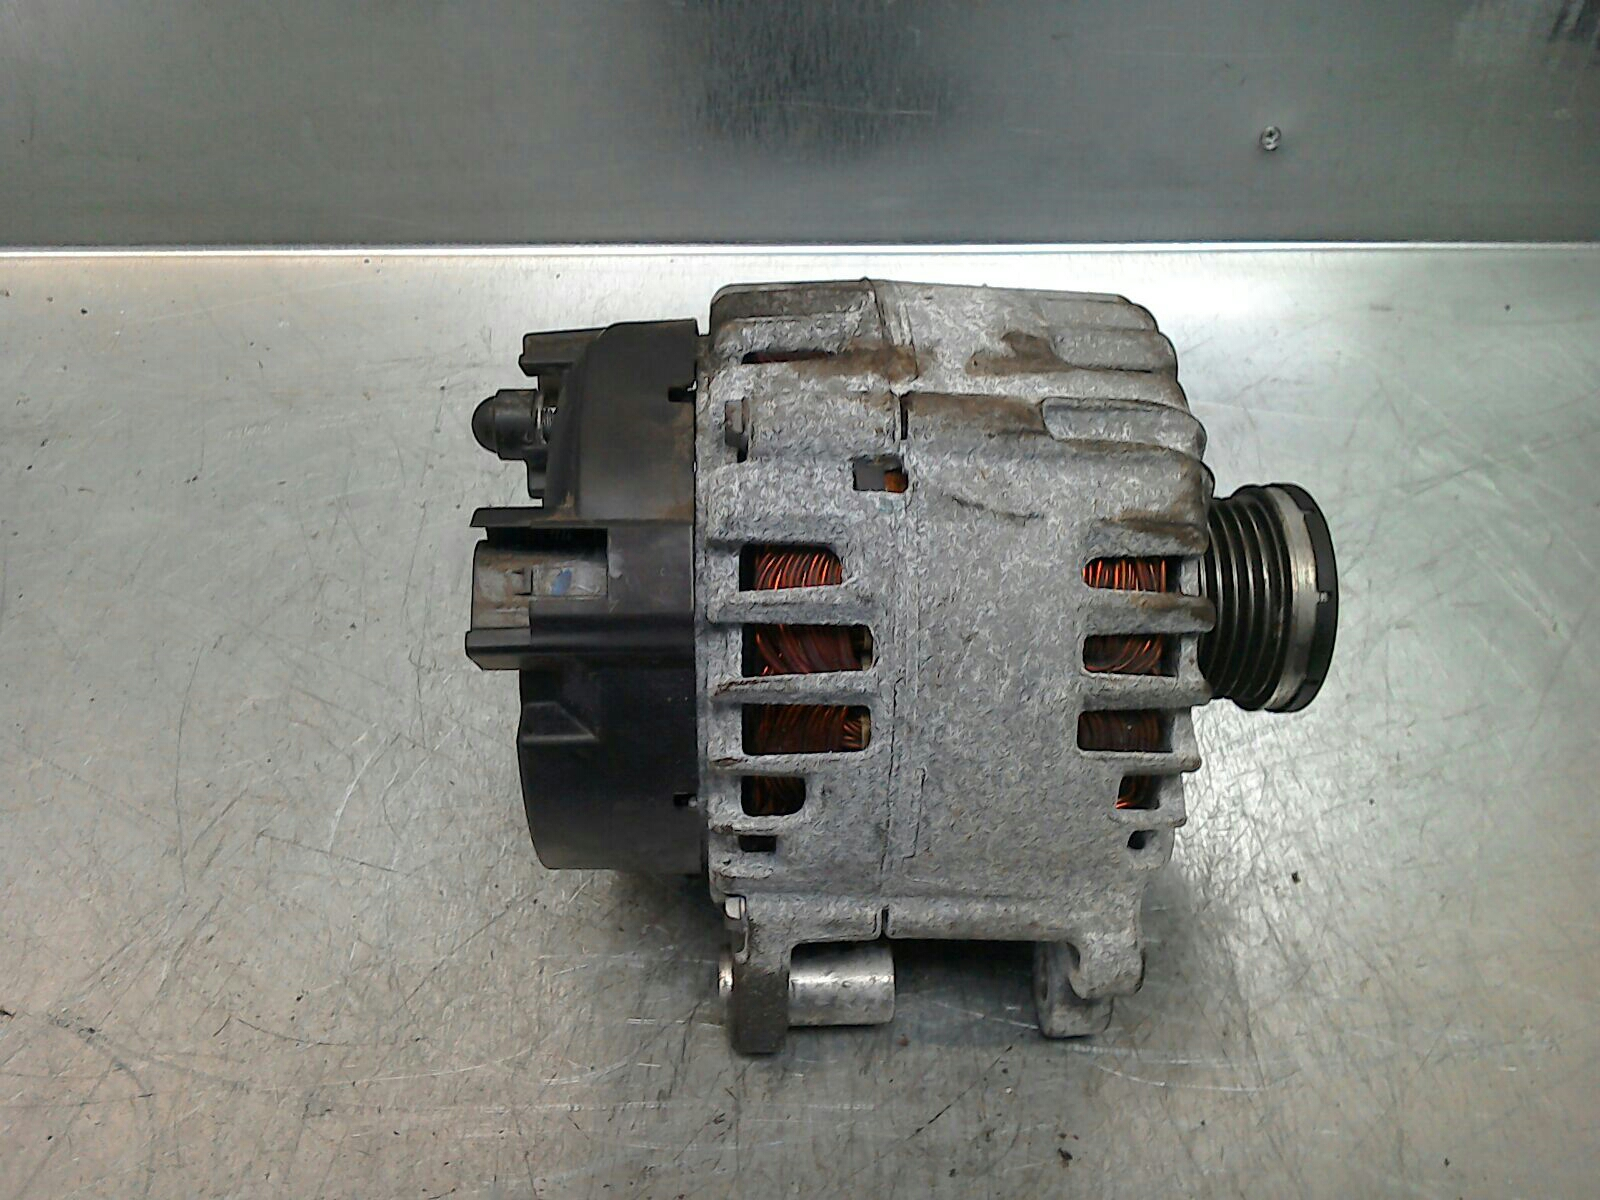 audi a3 2008 to 2013 alternator petrol manual for sale from scb rh scbvehicledismantlers co uk Audi A3 Owner Manual 2014 Audi A3